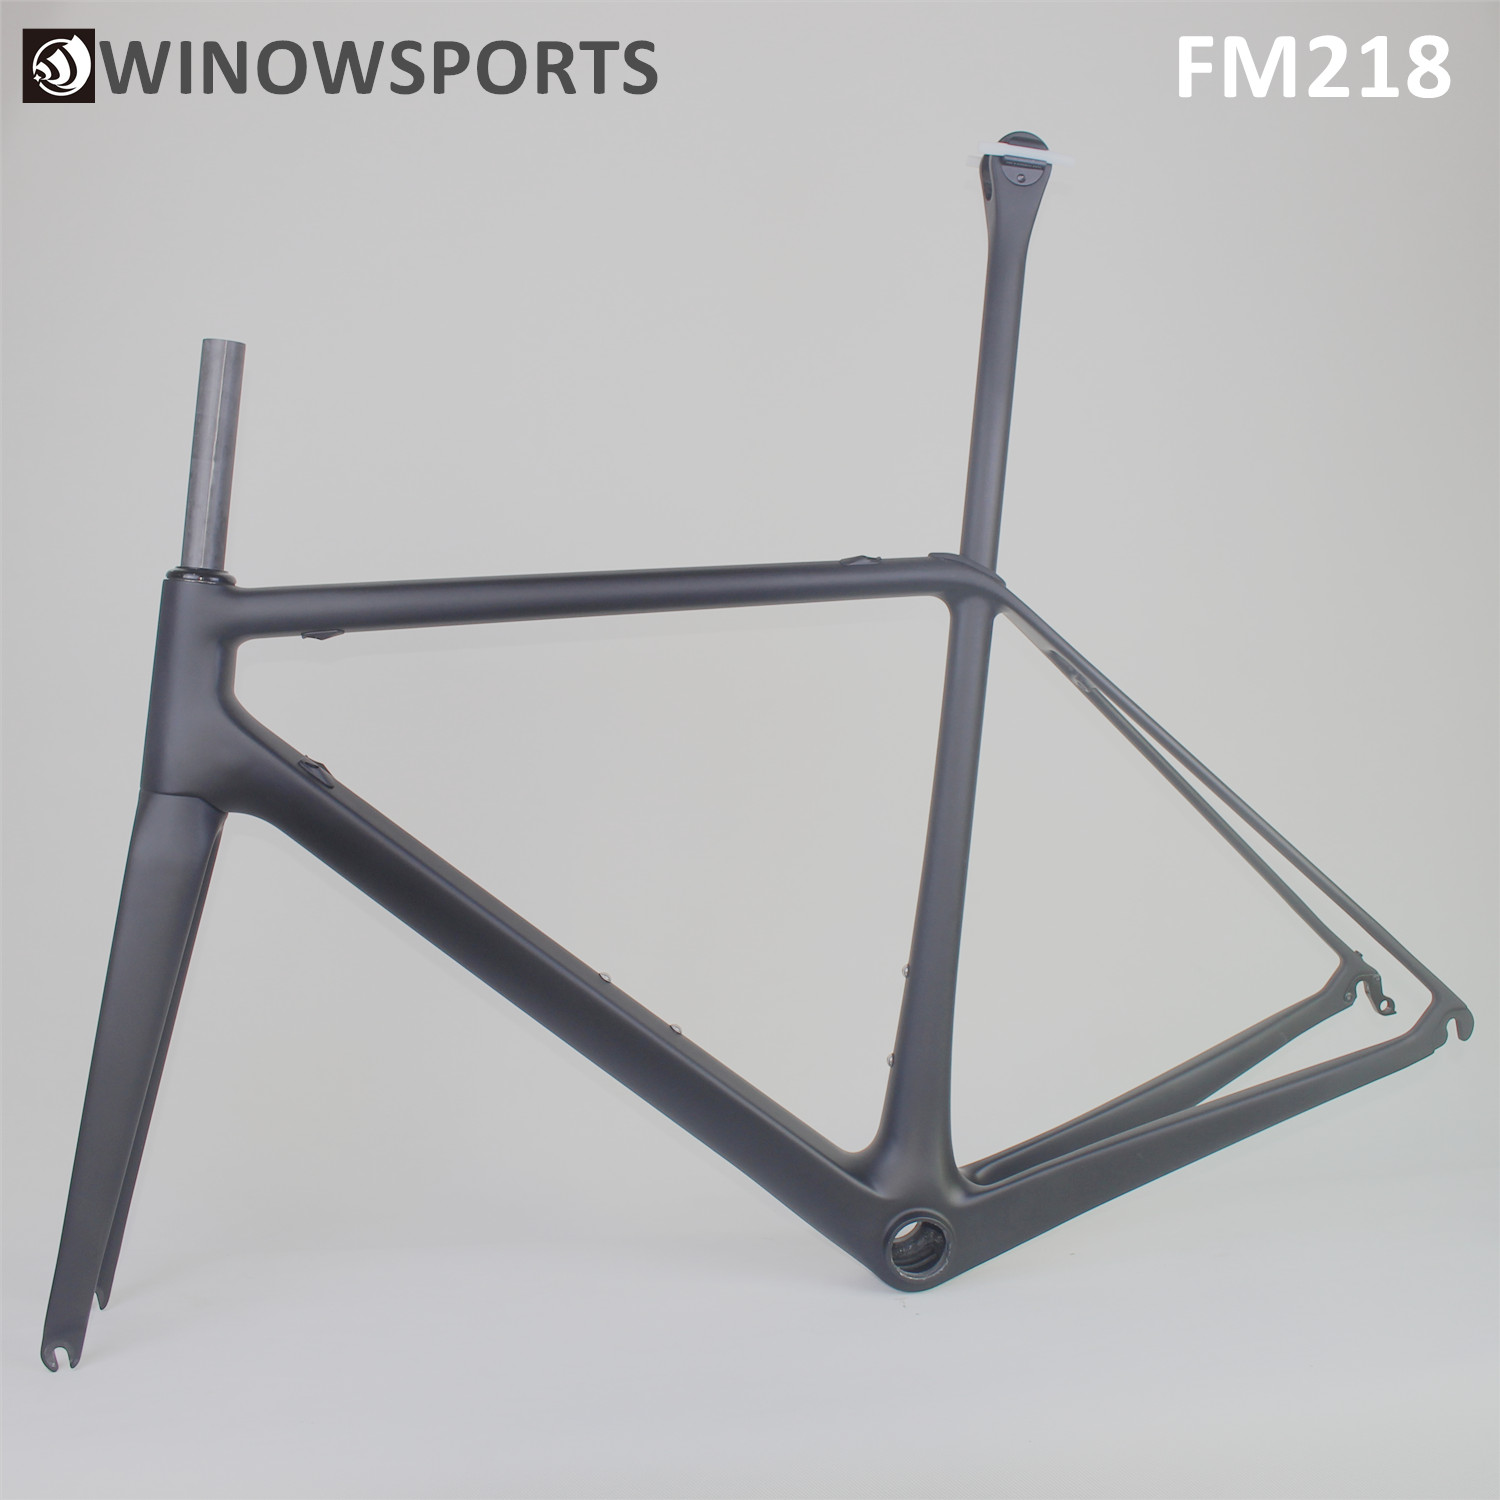 WINOWSPORTS 2020 New OEM Light Weight High Stifiness Carbon Road Bike Frame FM218 Road Rim Caliper Brake Gravel Bicycle Frameset